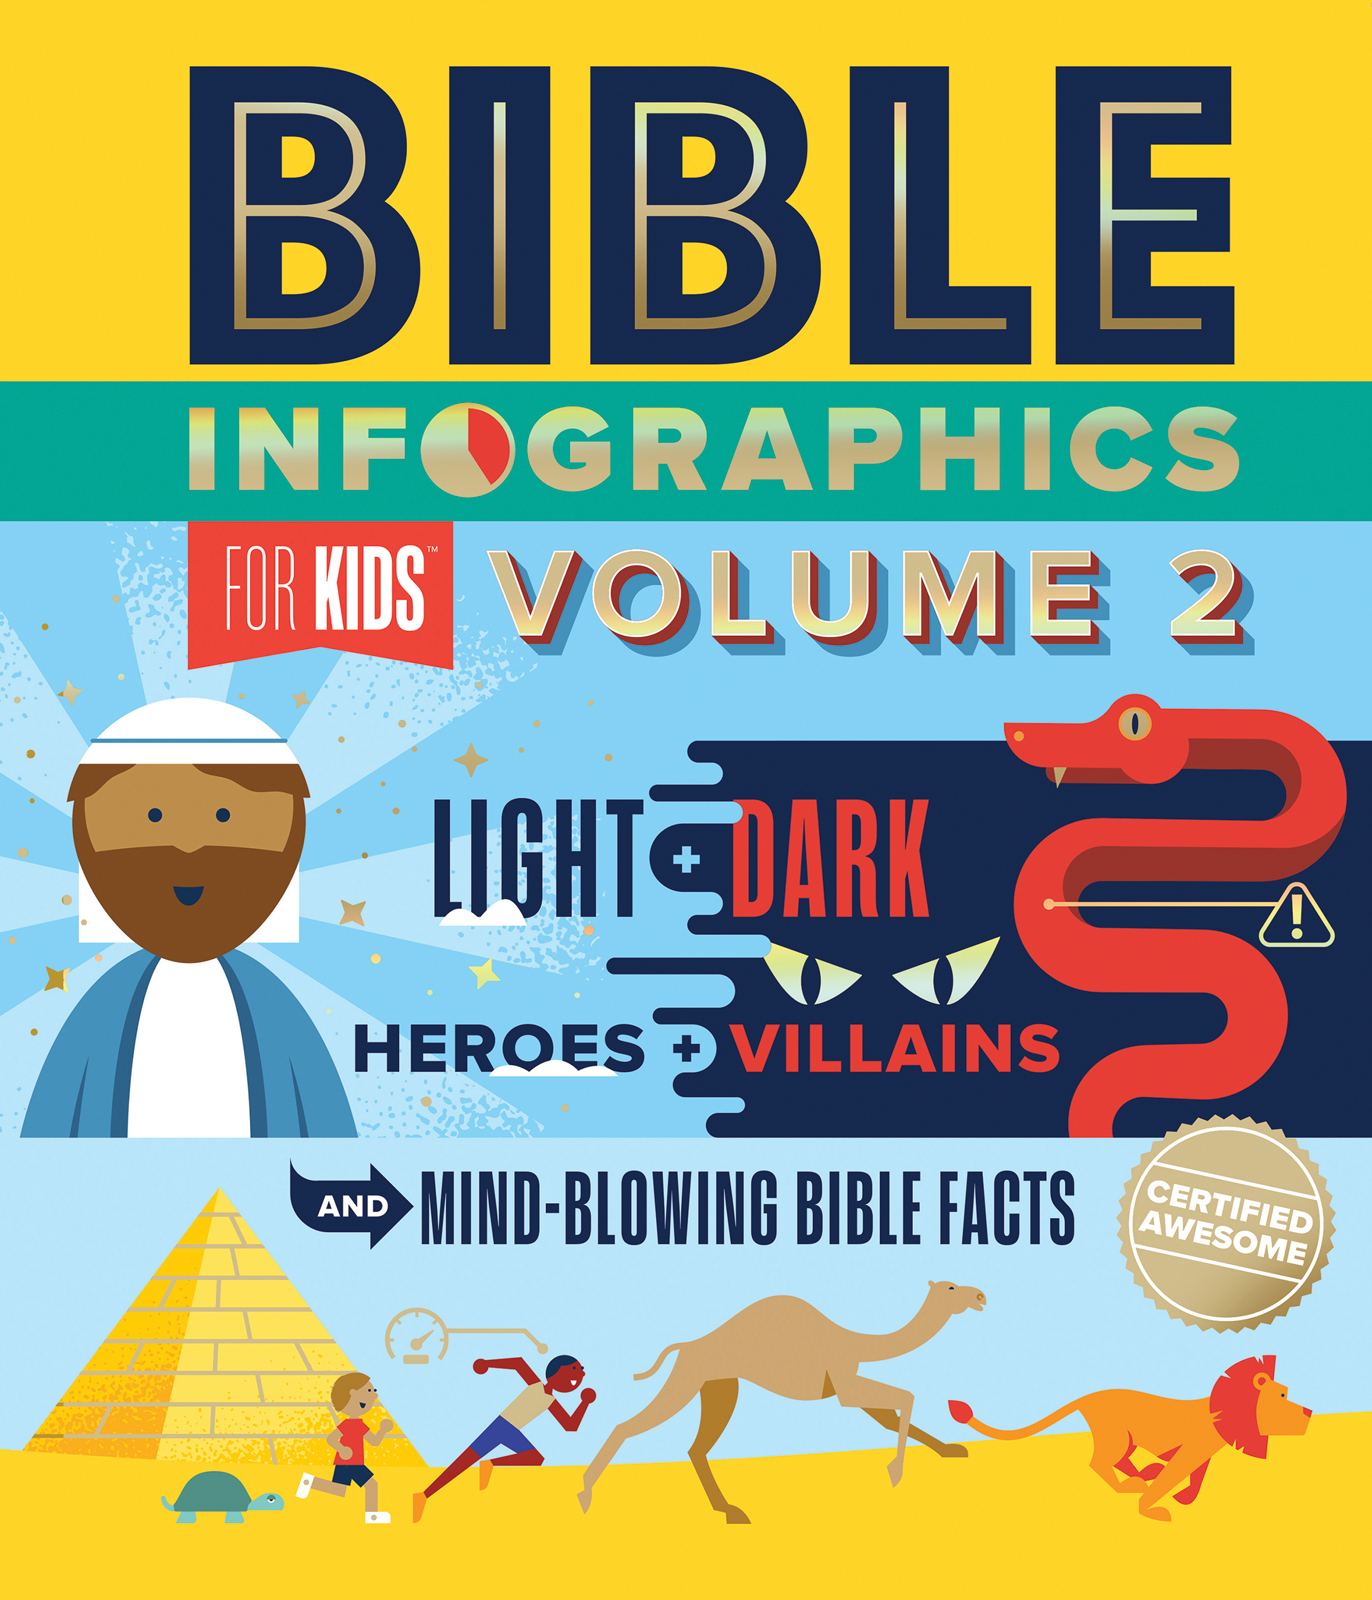 Bible Infographics for Kids Volume 2Harvest House